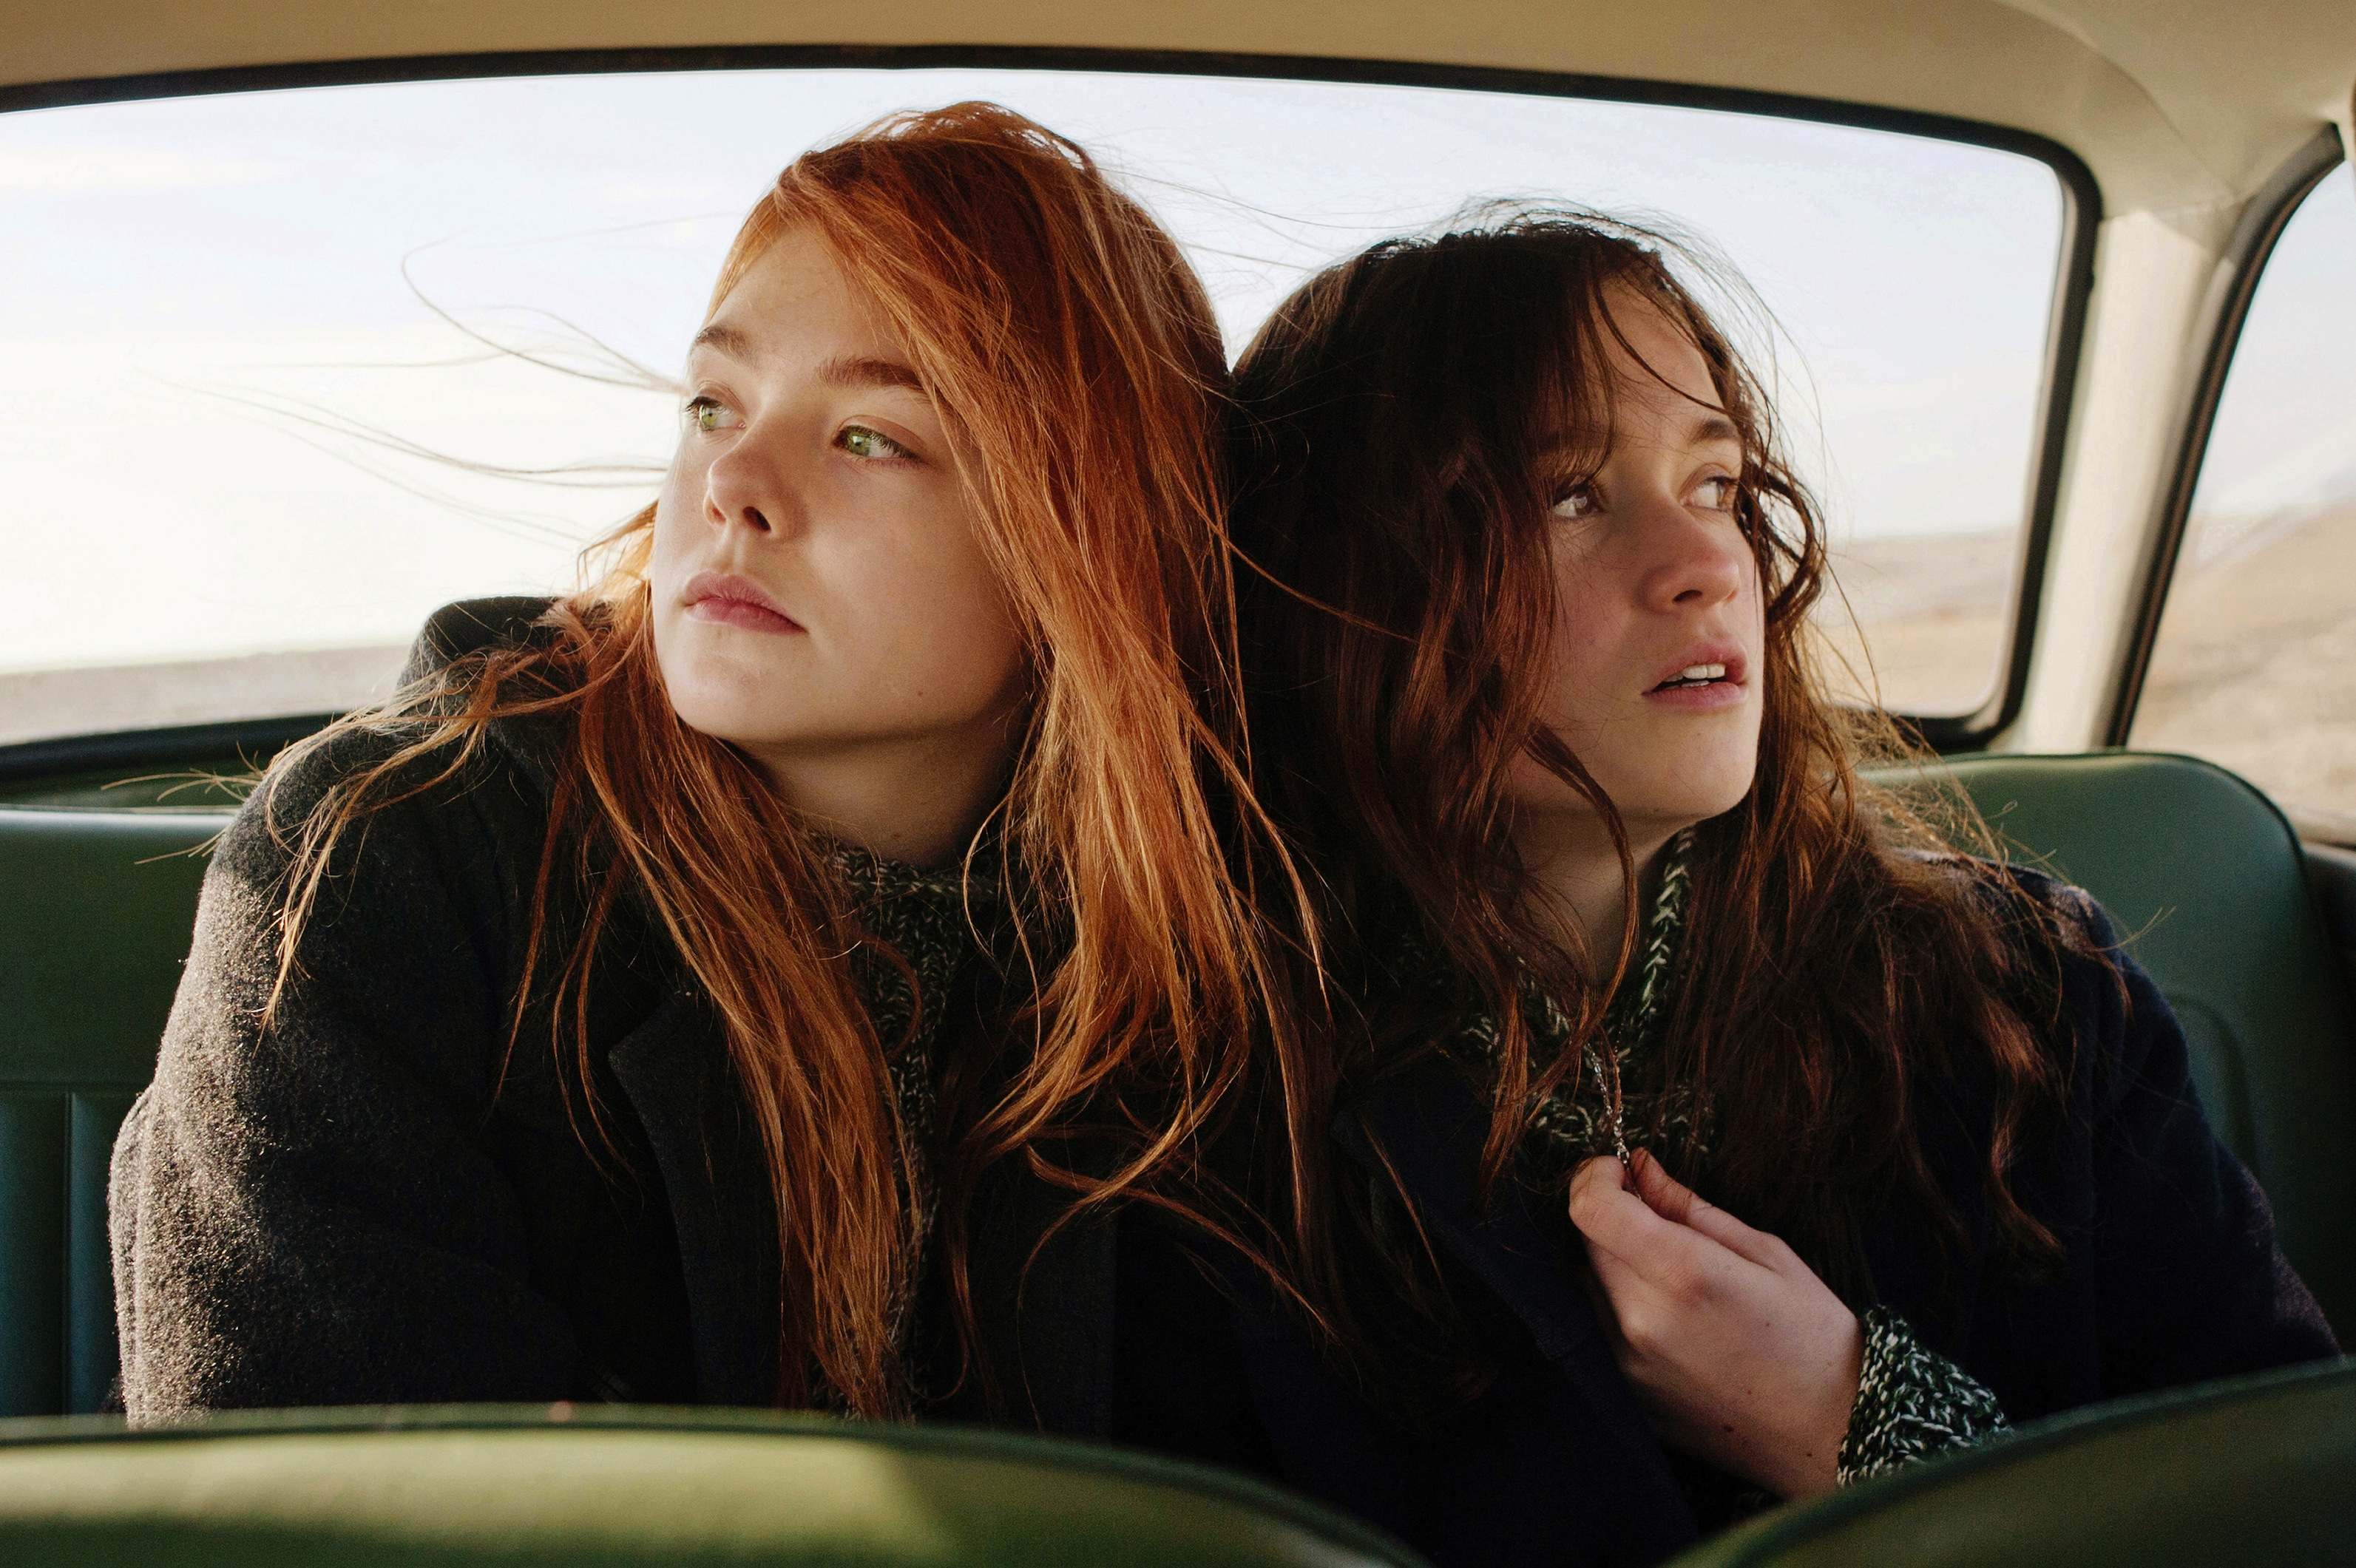 A Female Direction: Ginger & Rosa (2012)